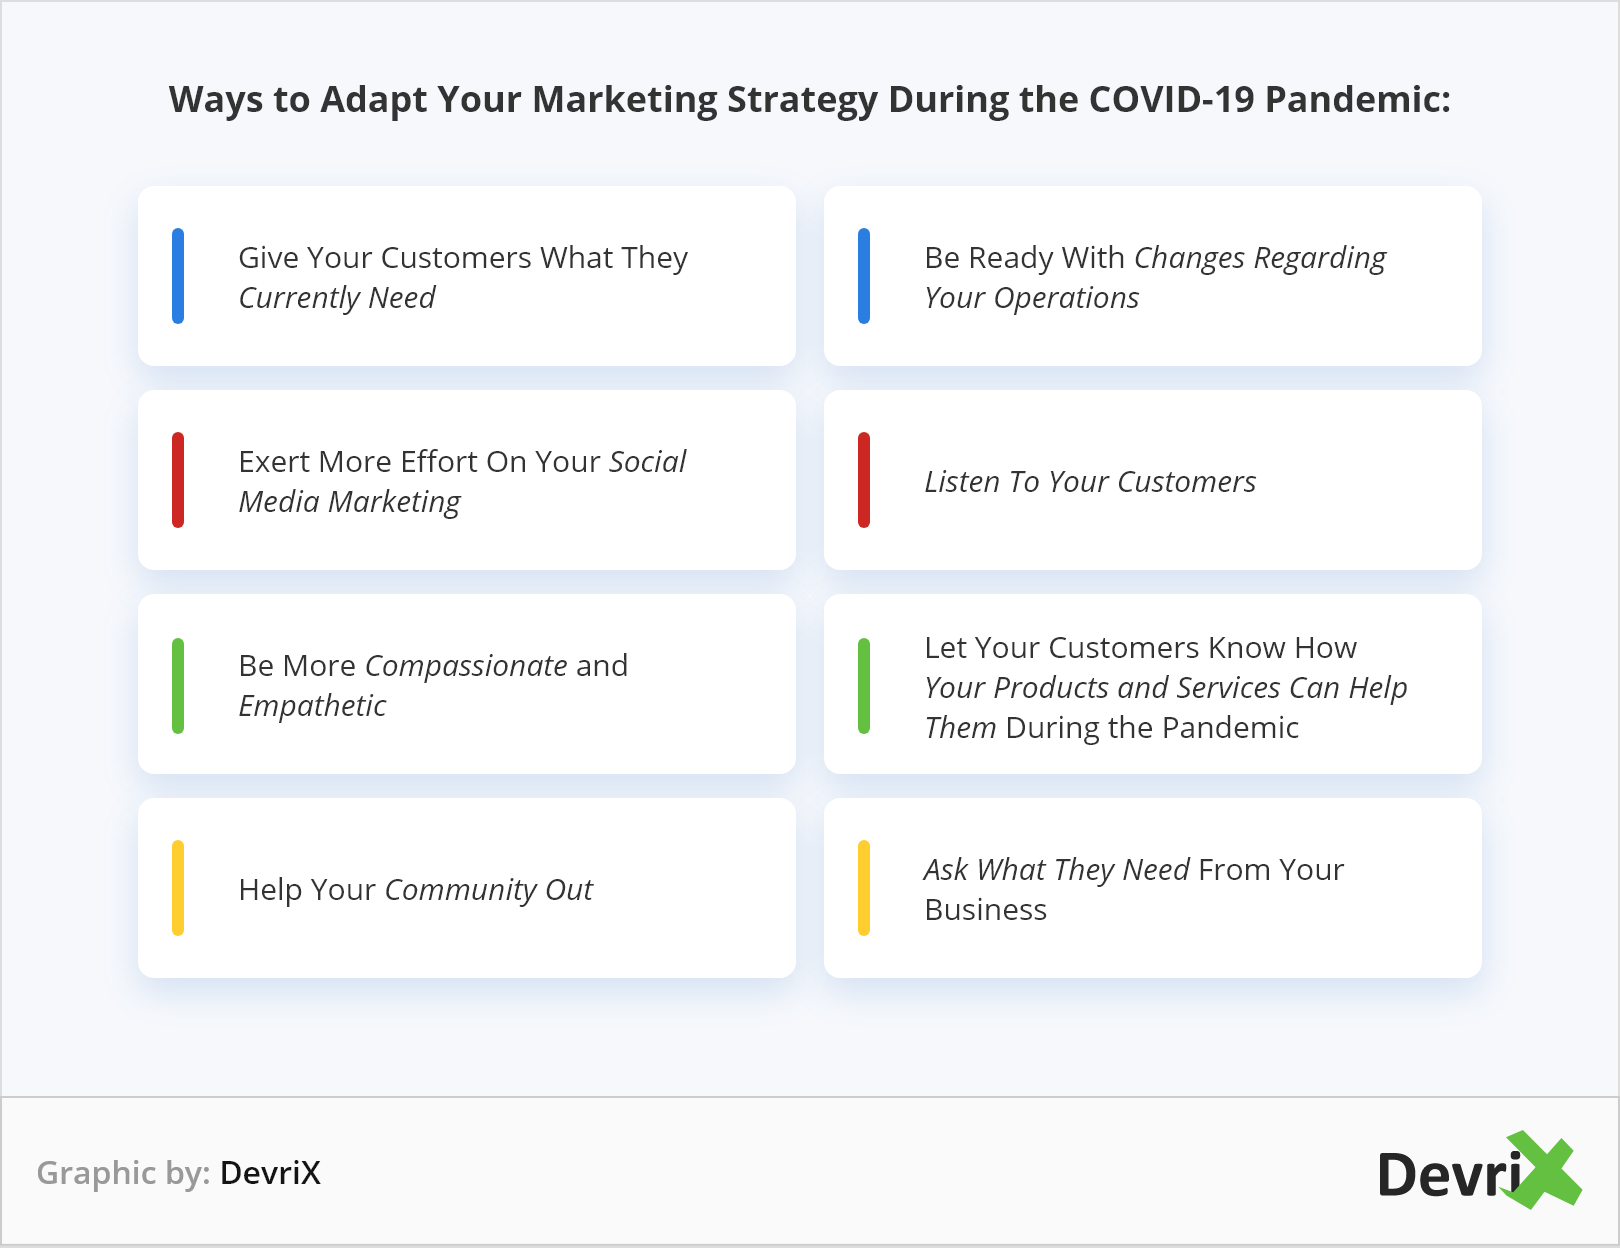 Ways to Adapt Your Marketing Strategy During the COVID-19 Pandemic